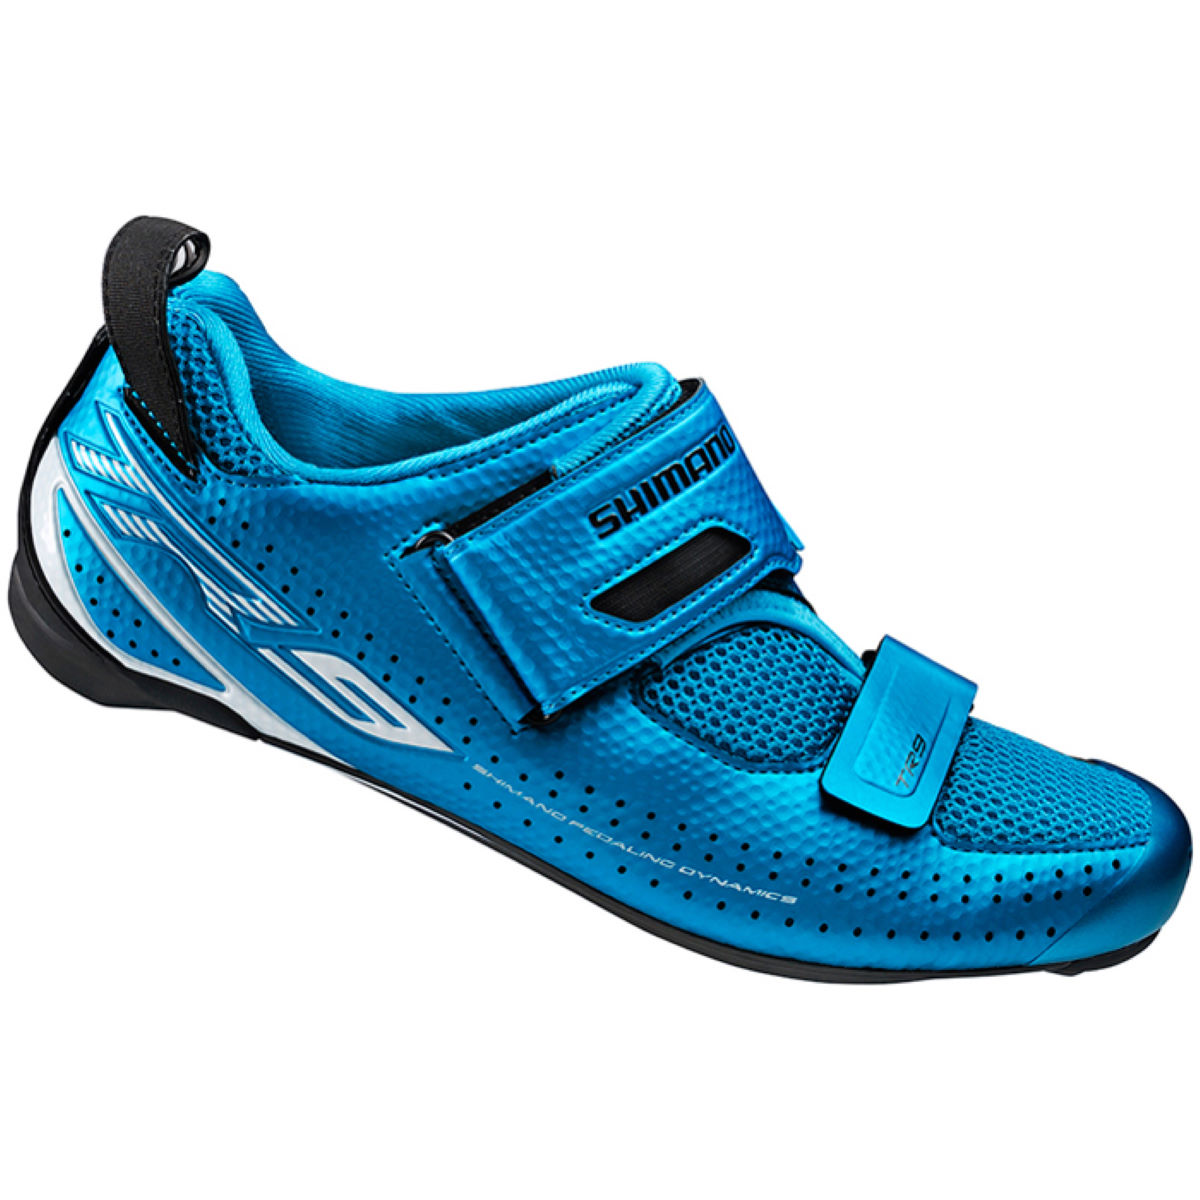 Shimano TR9 SPD-SL Shoes - Triathlon Shoes